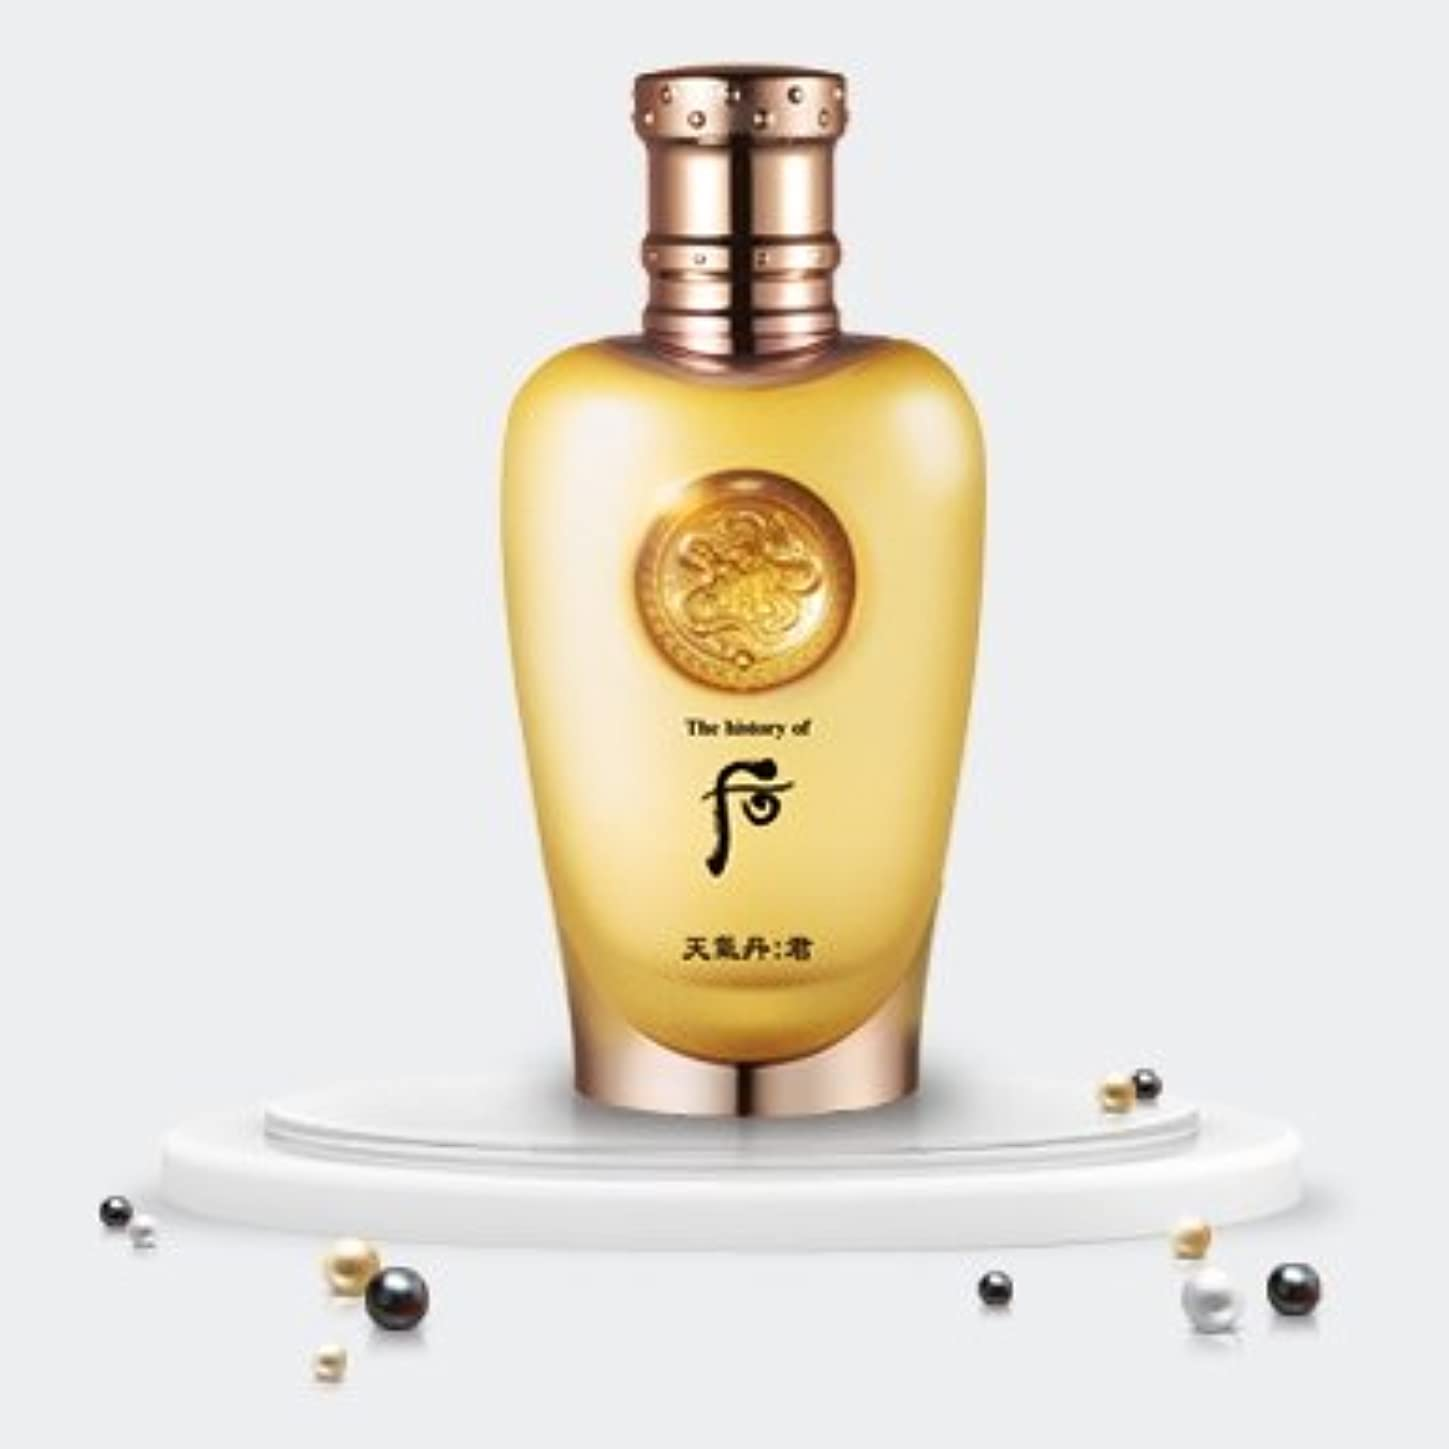 クレーン味わうどれでもThe history of Whoo Hwa Yang Lotion Man's Premium line Cheon Gi Dan 110ml[並行輸入品]